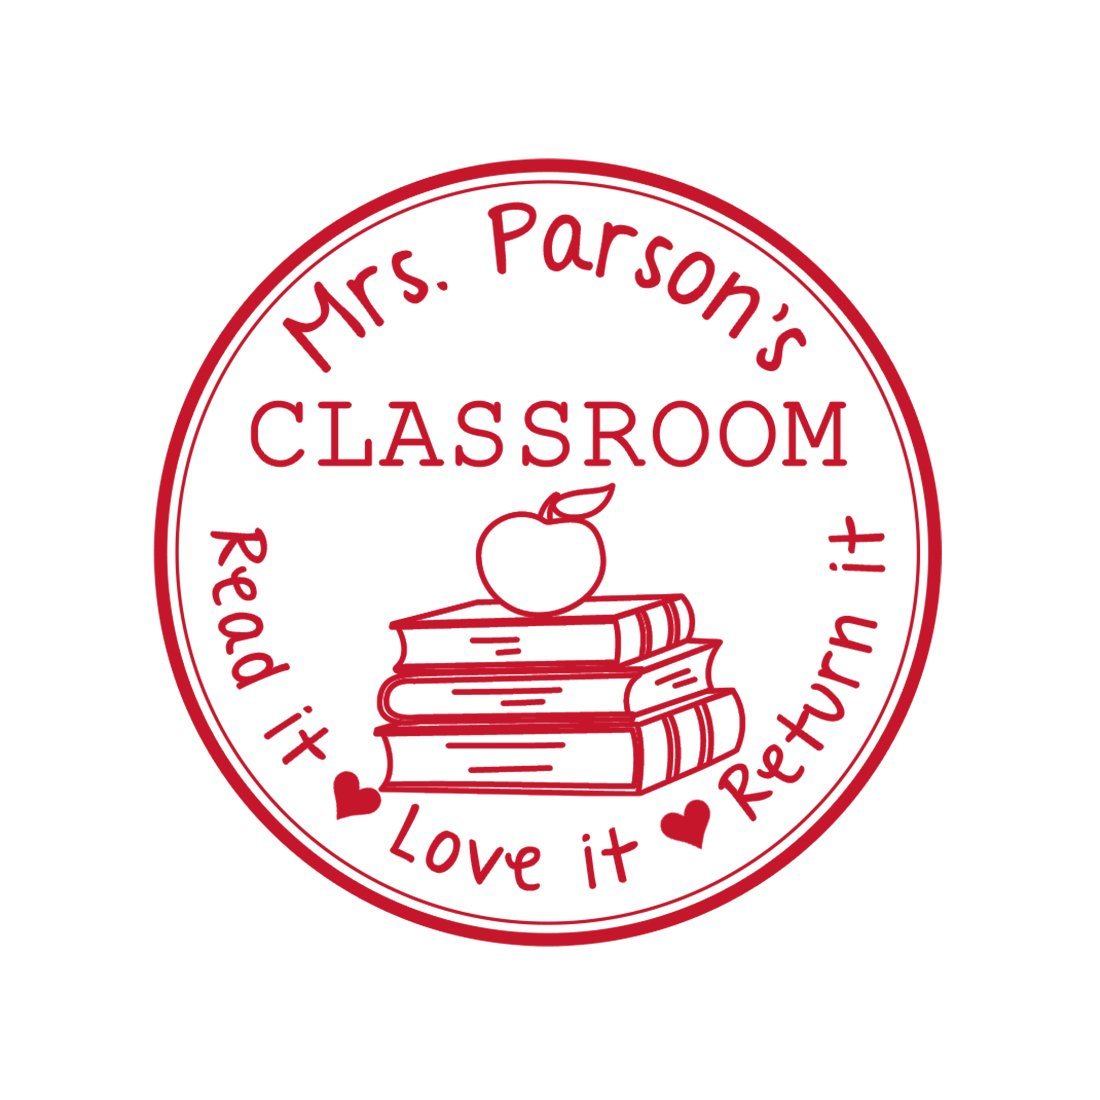 Wooden Handle - Separate Ink Pad Required Wooden Handle Stamp From the Library of Teacher Gift Customizable Teacher Stamp This Belongs to Labels Personalized Circle Classroom Stamp